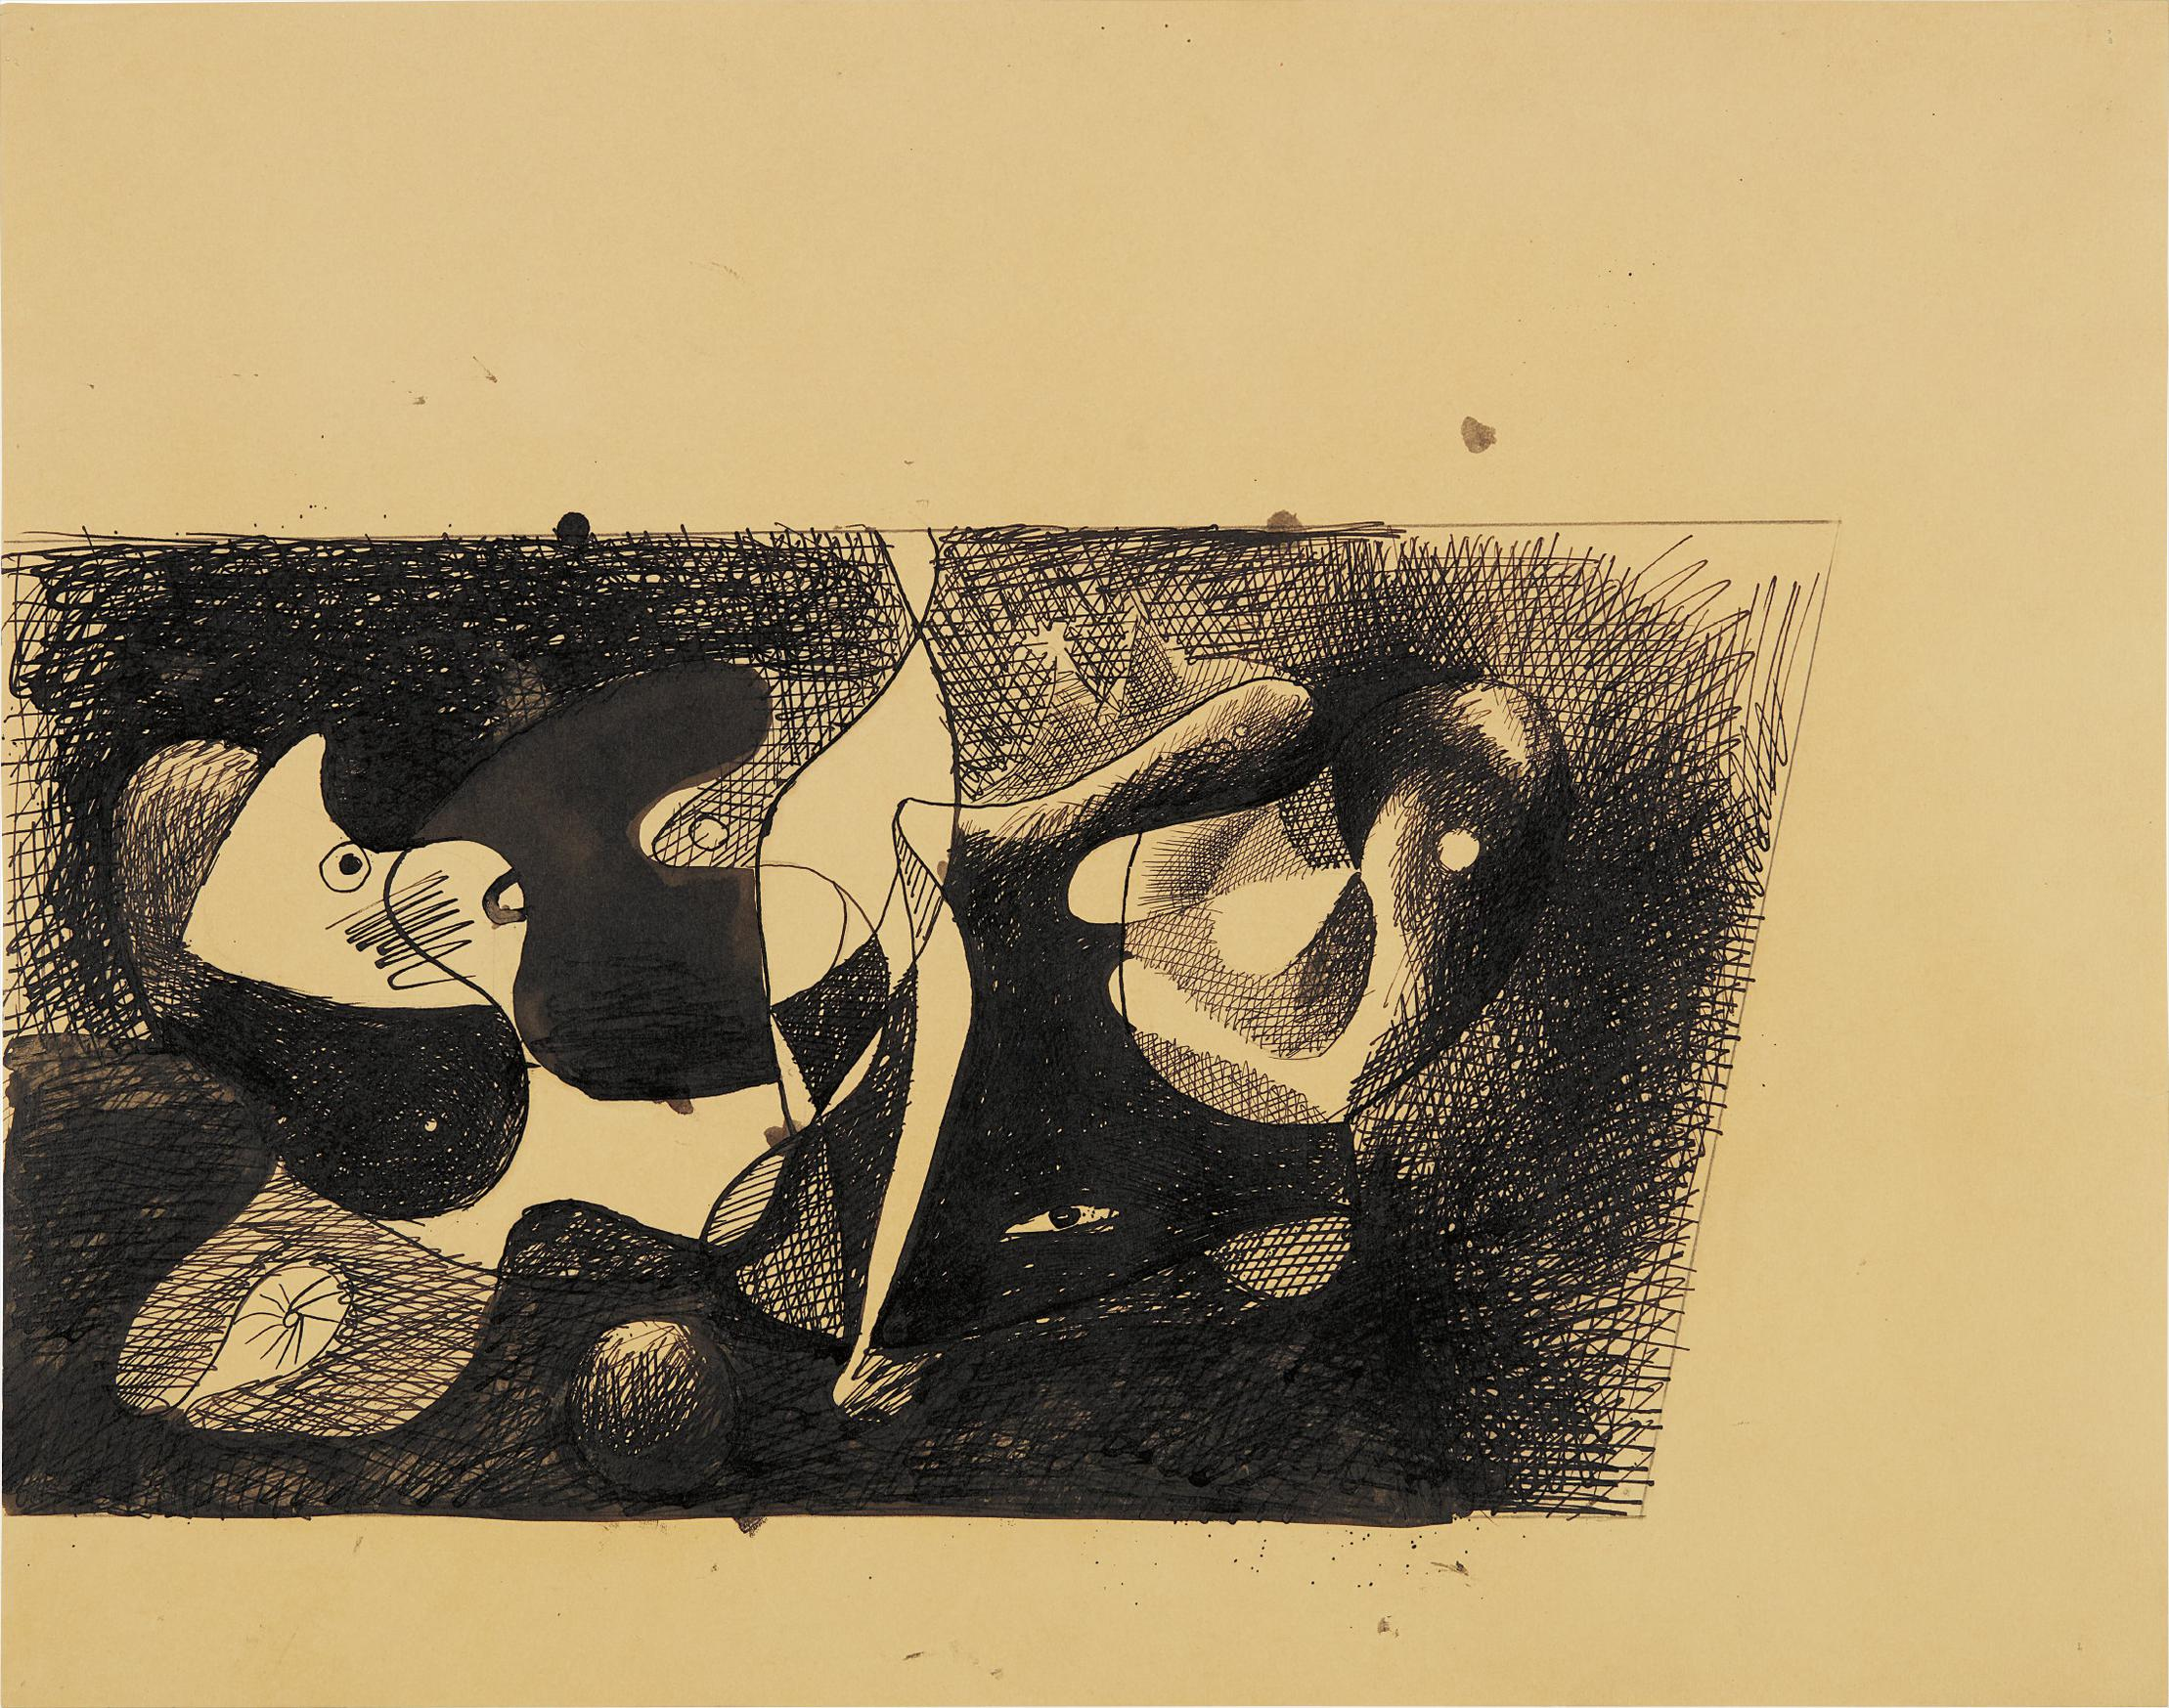 Arshile Gorky-Study For Nighttime, Enigma And Nostalgia-1932